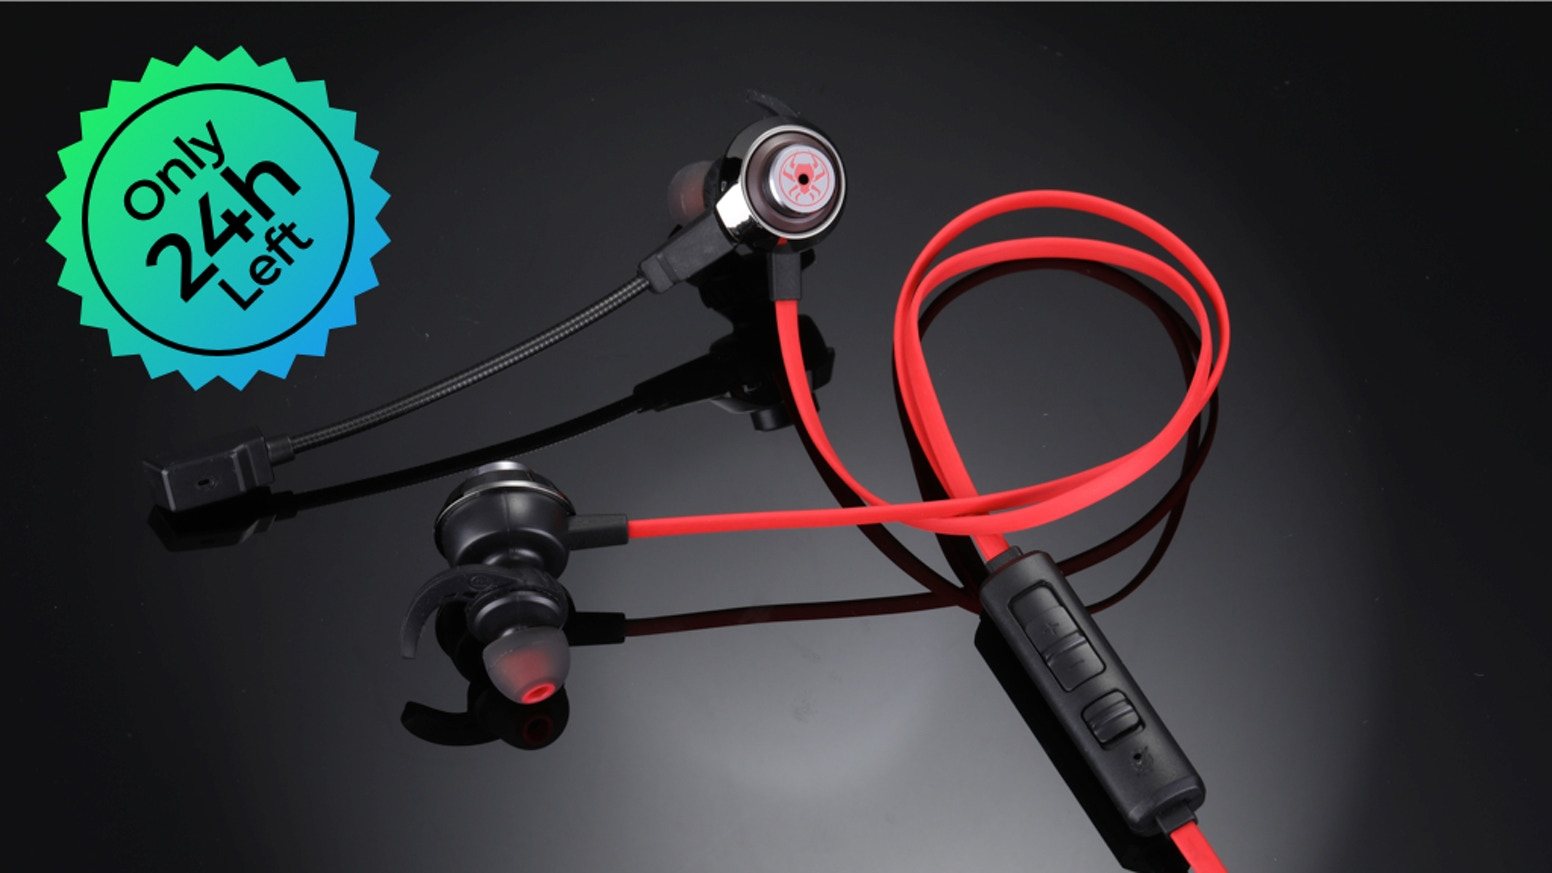 Quake:Lightest Virtual 7 1 Gaming Earbuds with Vibration by Quake